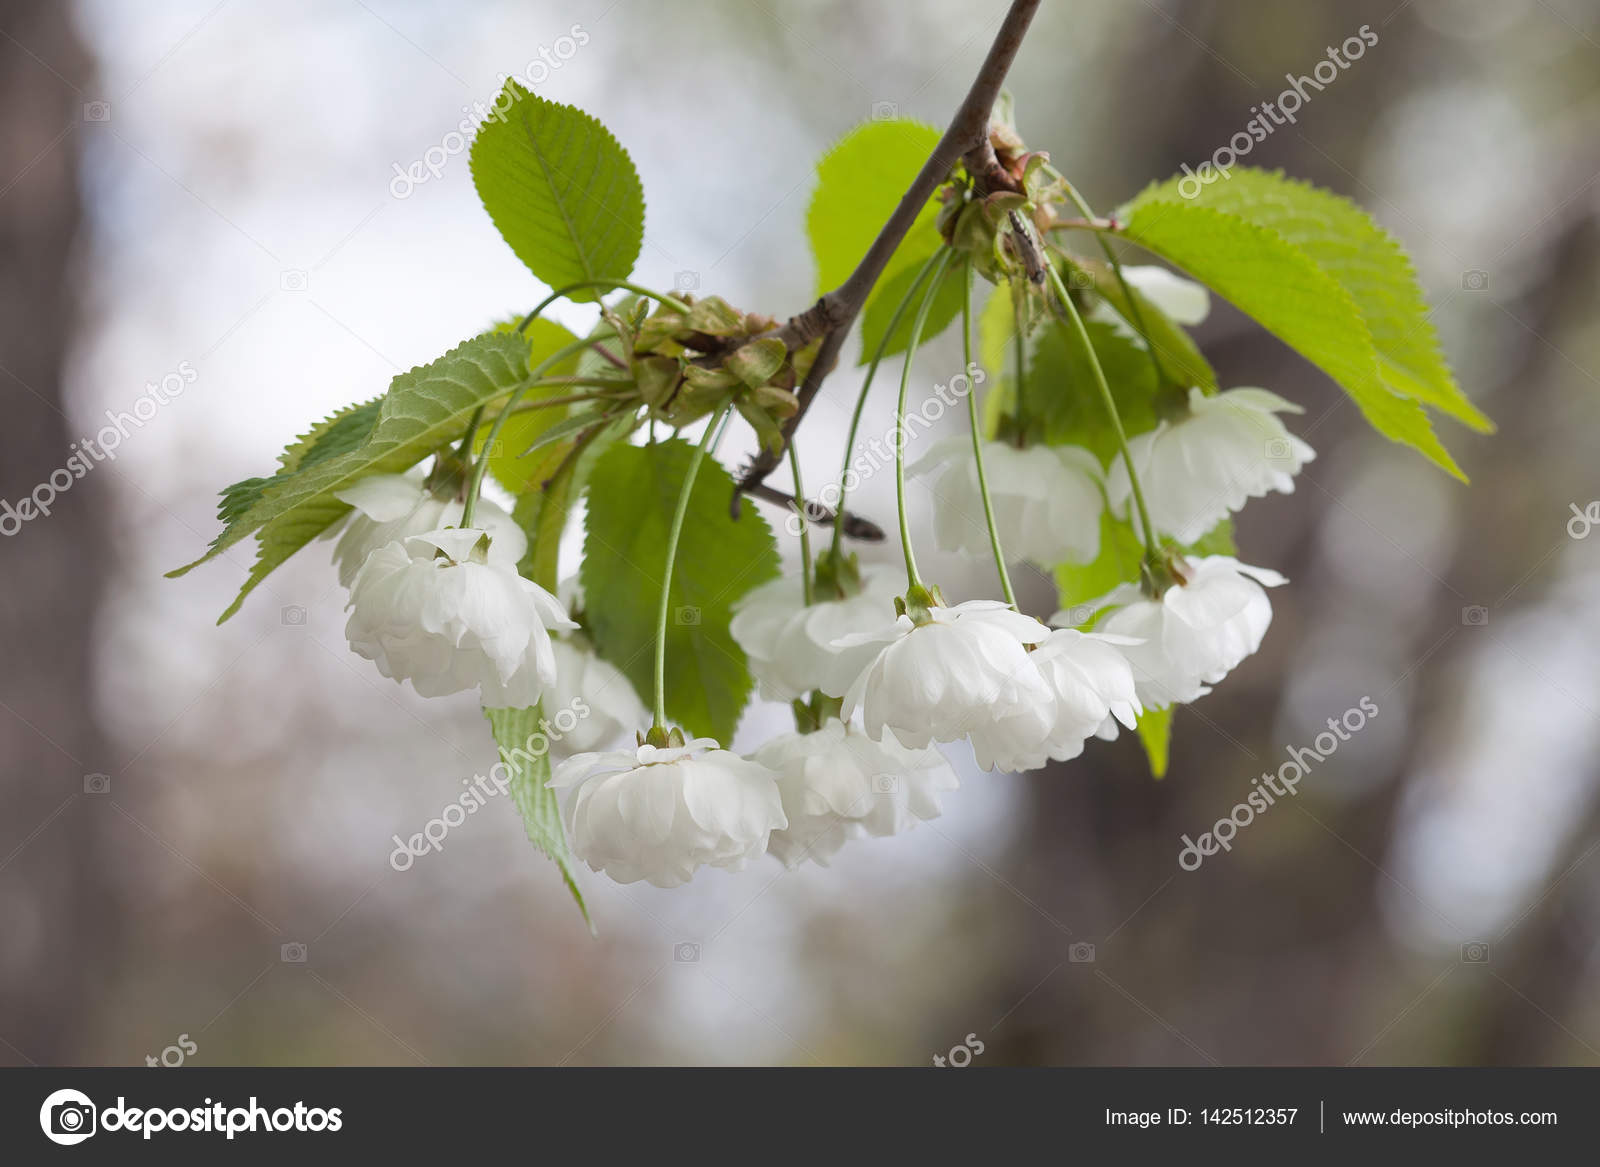 Blooming Chinese Apple Branch With White Flowers And Green Leaves